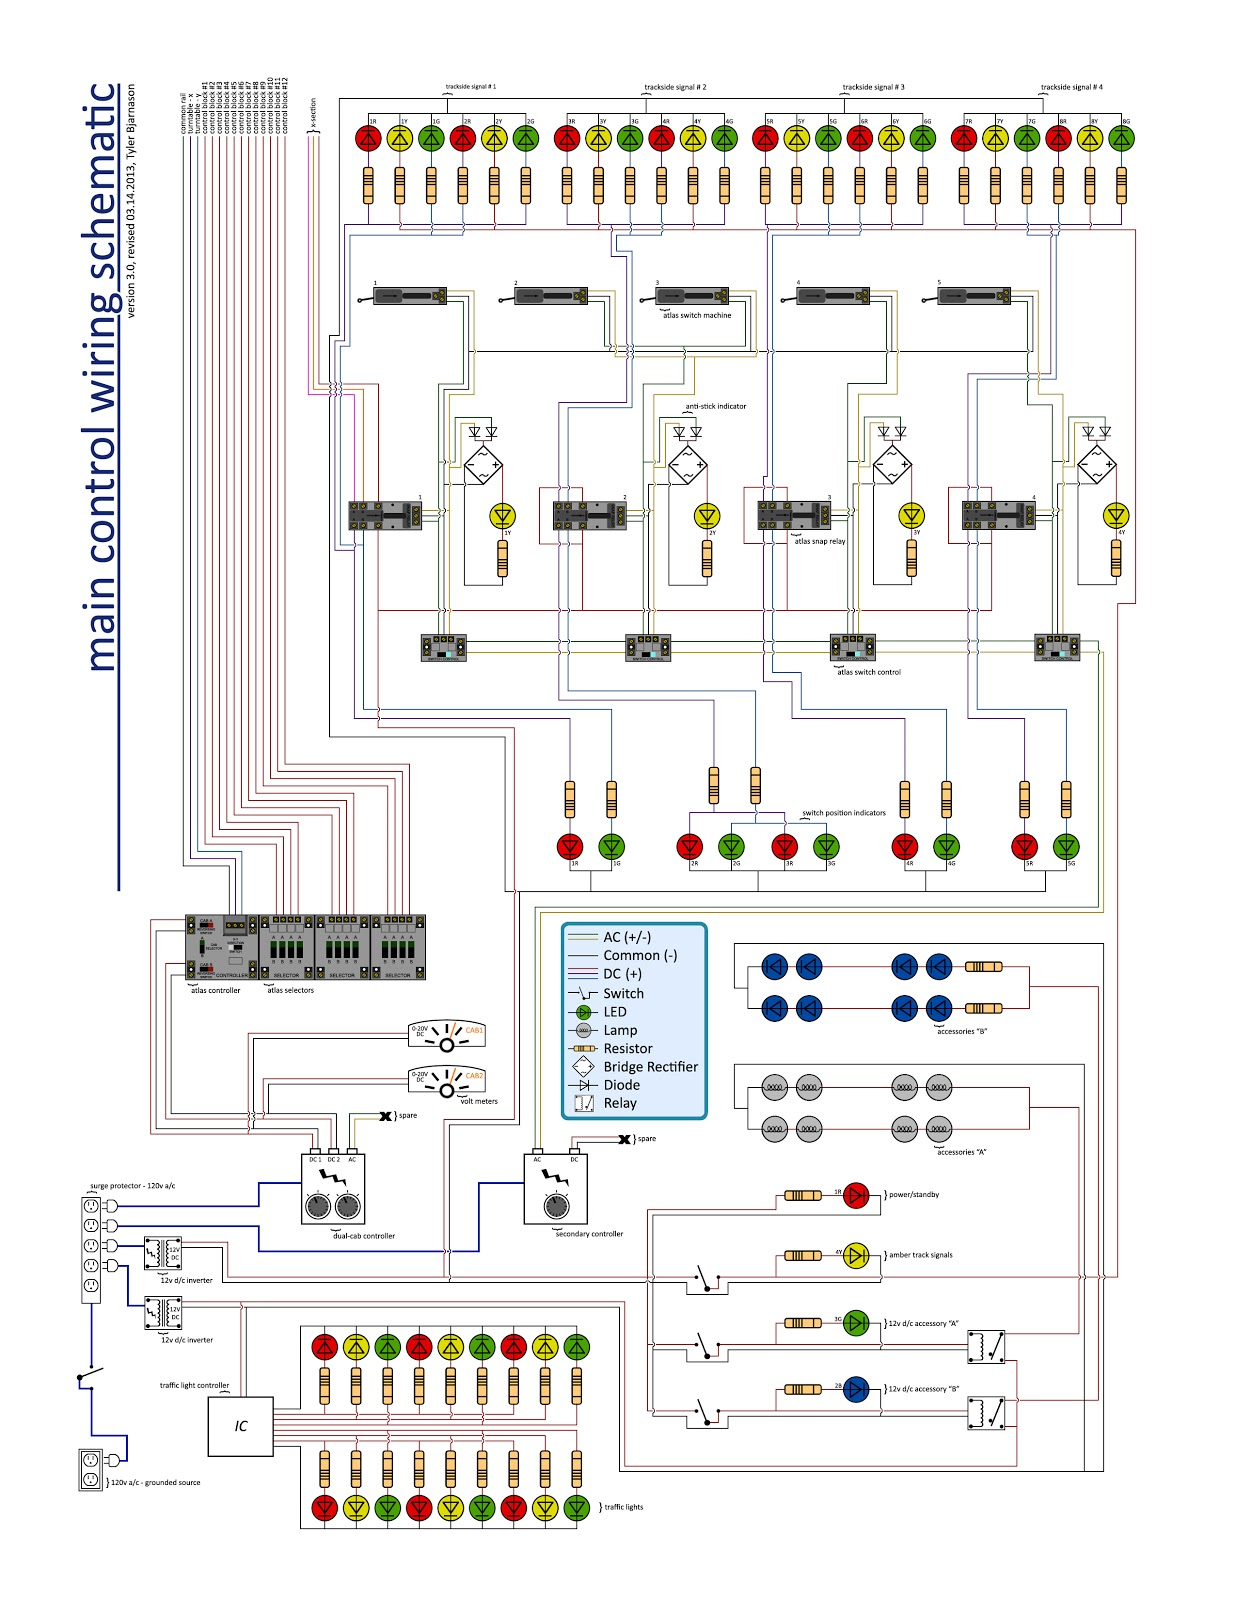 ho railroad wiring block diagram wiring diagrams konsult railroad signal wiring diagram [ 1236 x 1600 Pixel ]